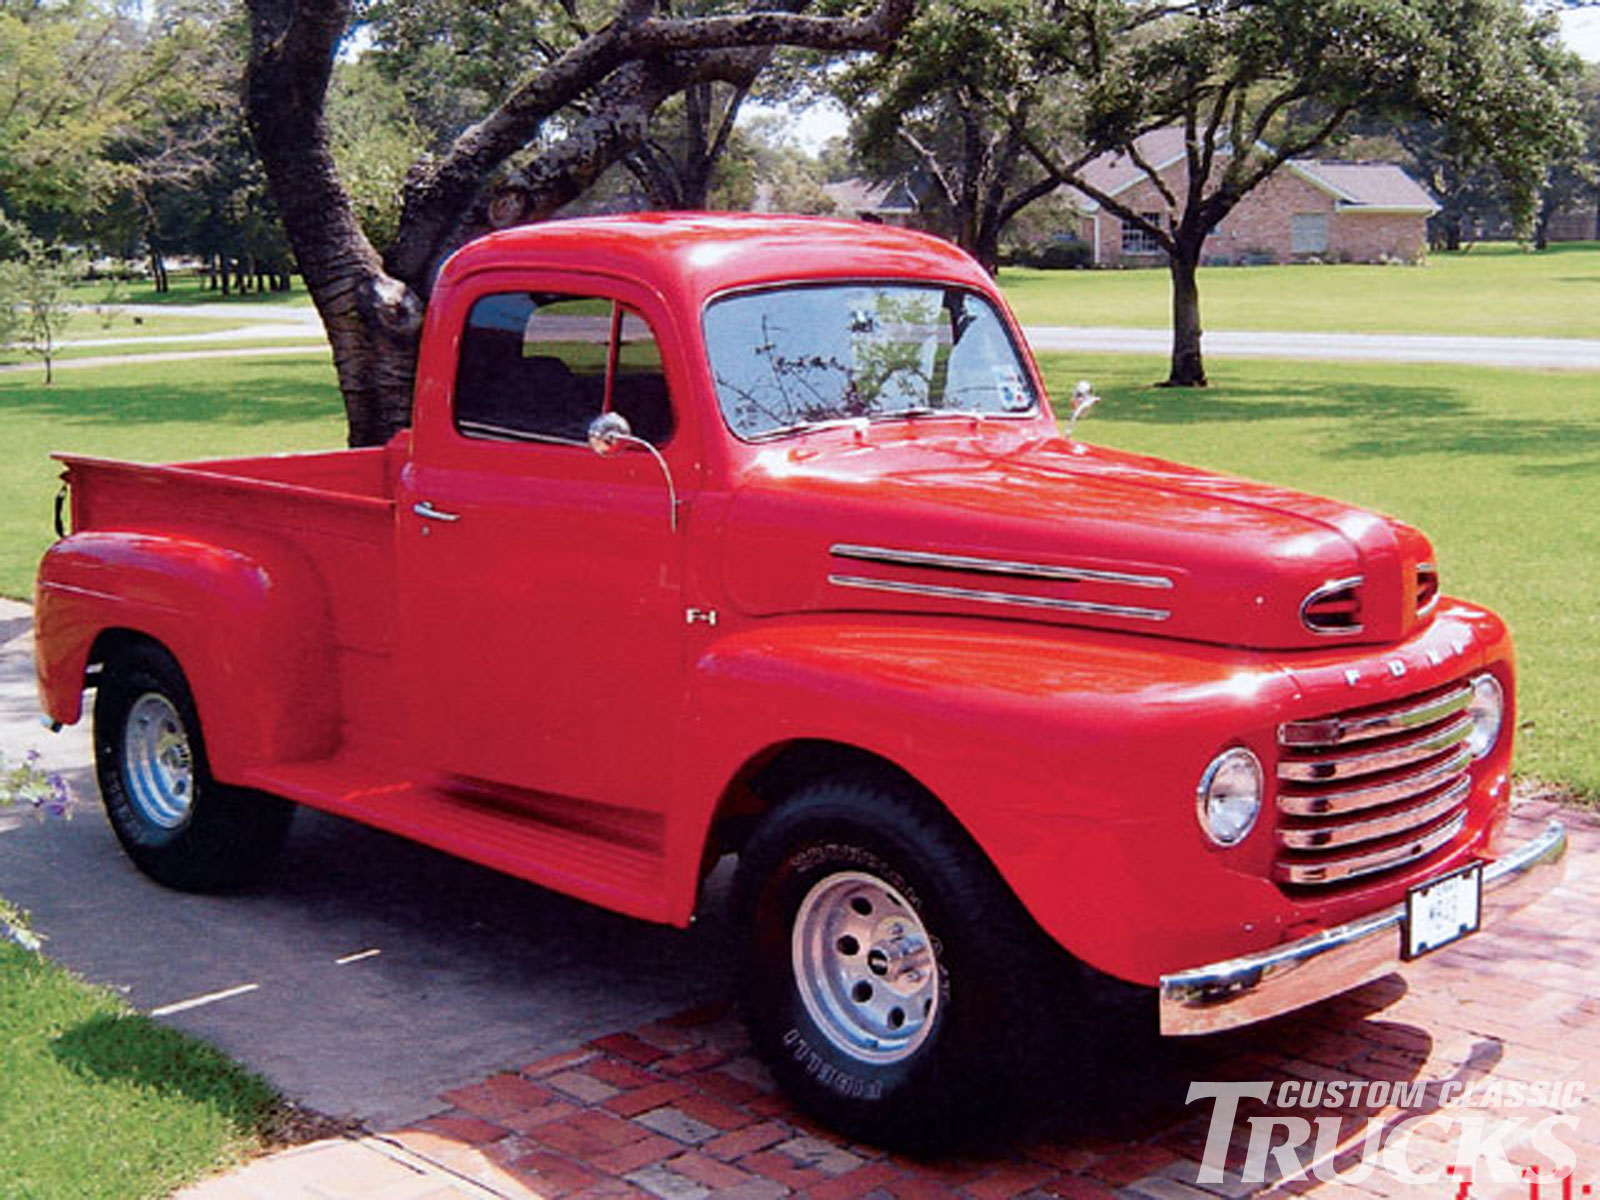 0502cct 01 z custom classic trucks readers rides 1948 ford?resize\\\=665%2C499 90 ford tractor 5610 wiring wiring diagrams 5610 ford tractor wiring diagram at n-0.co